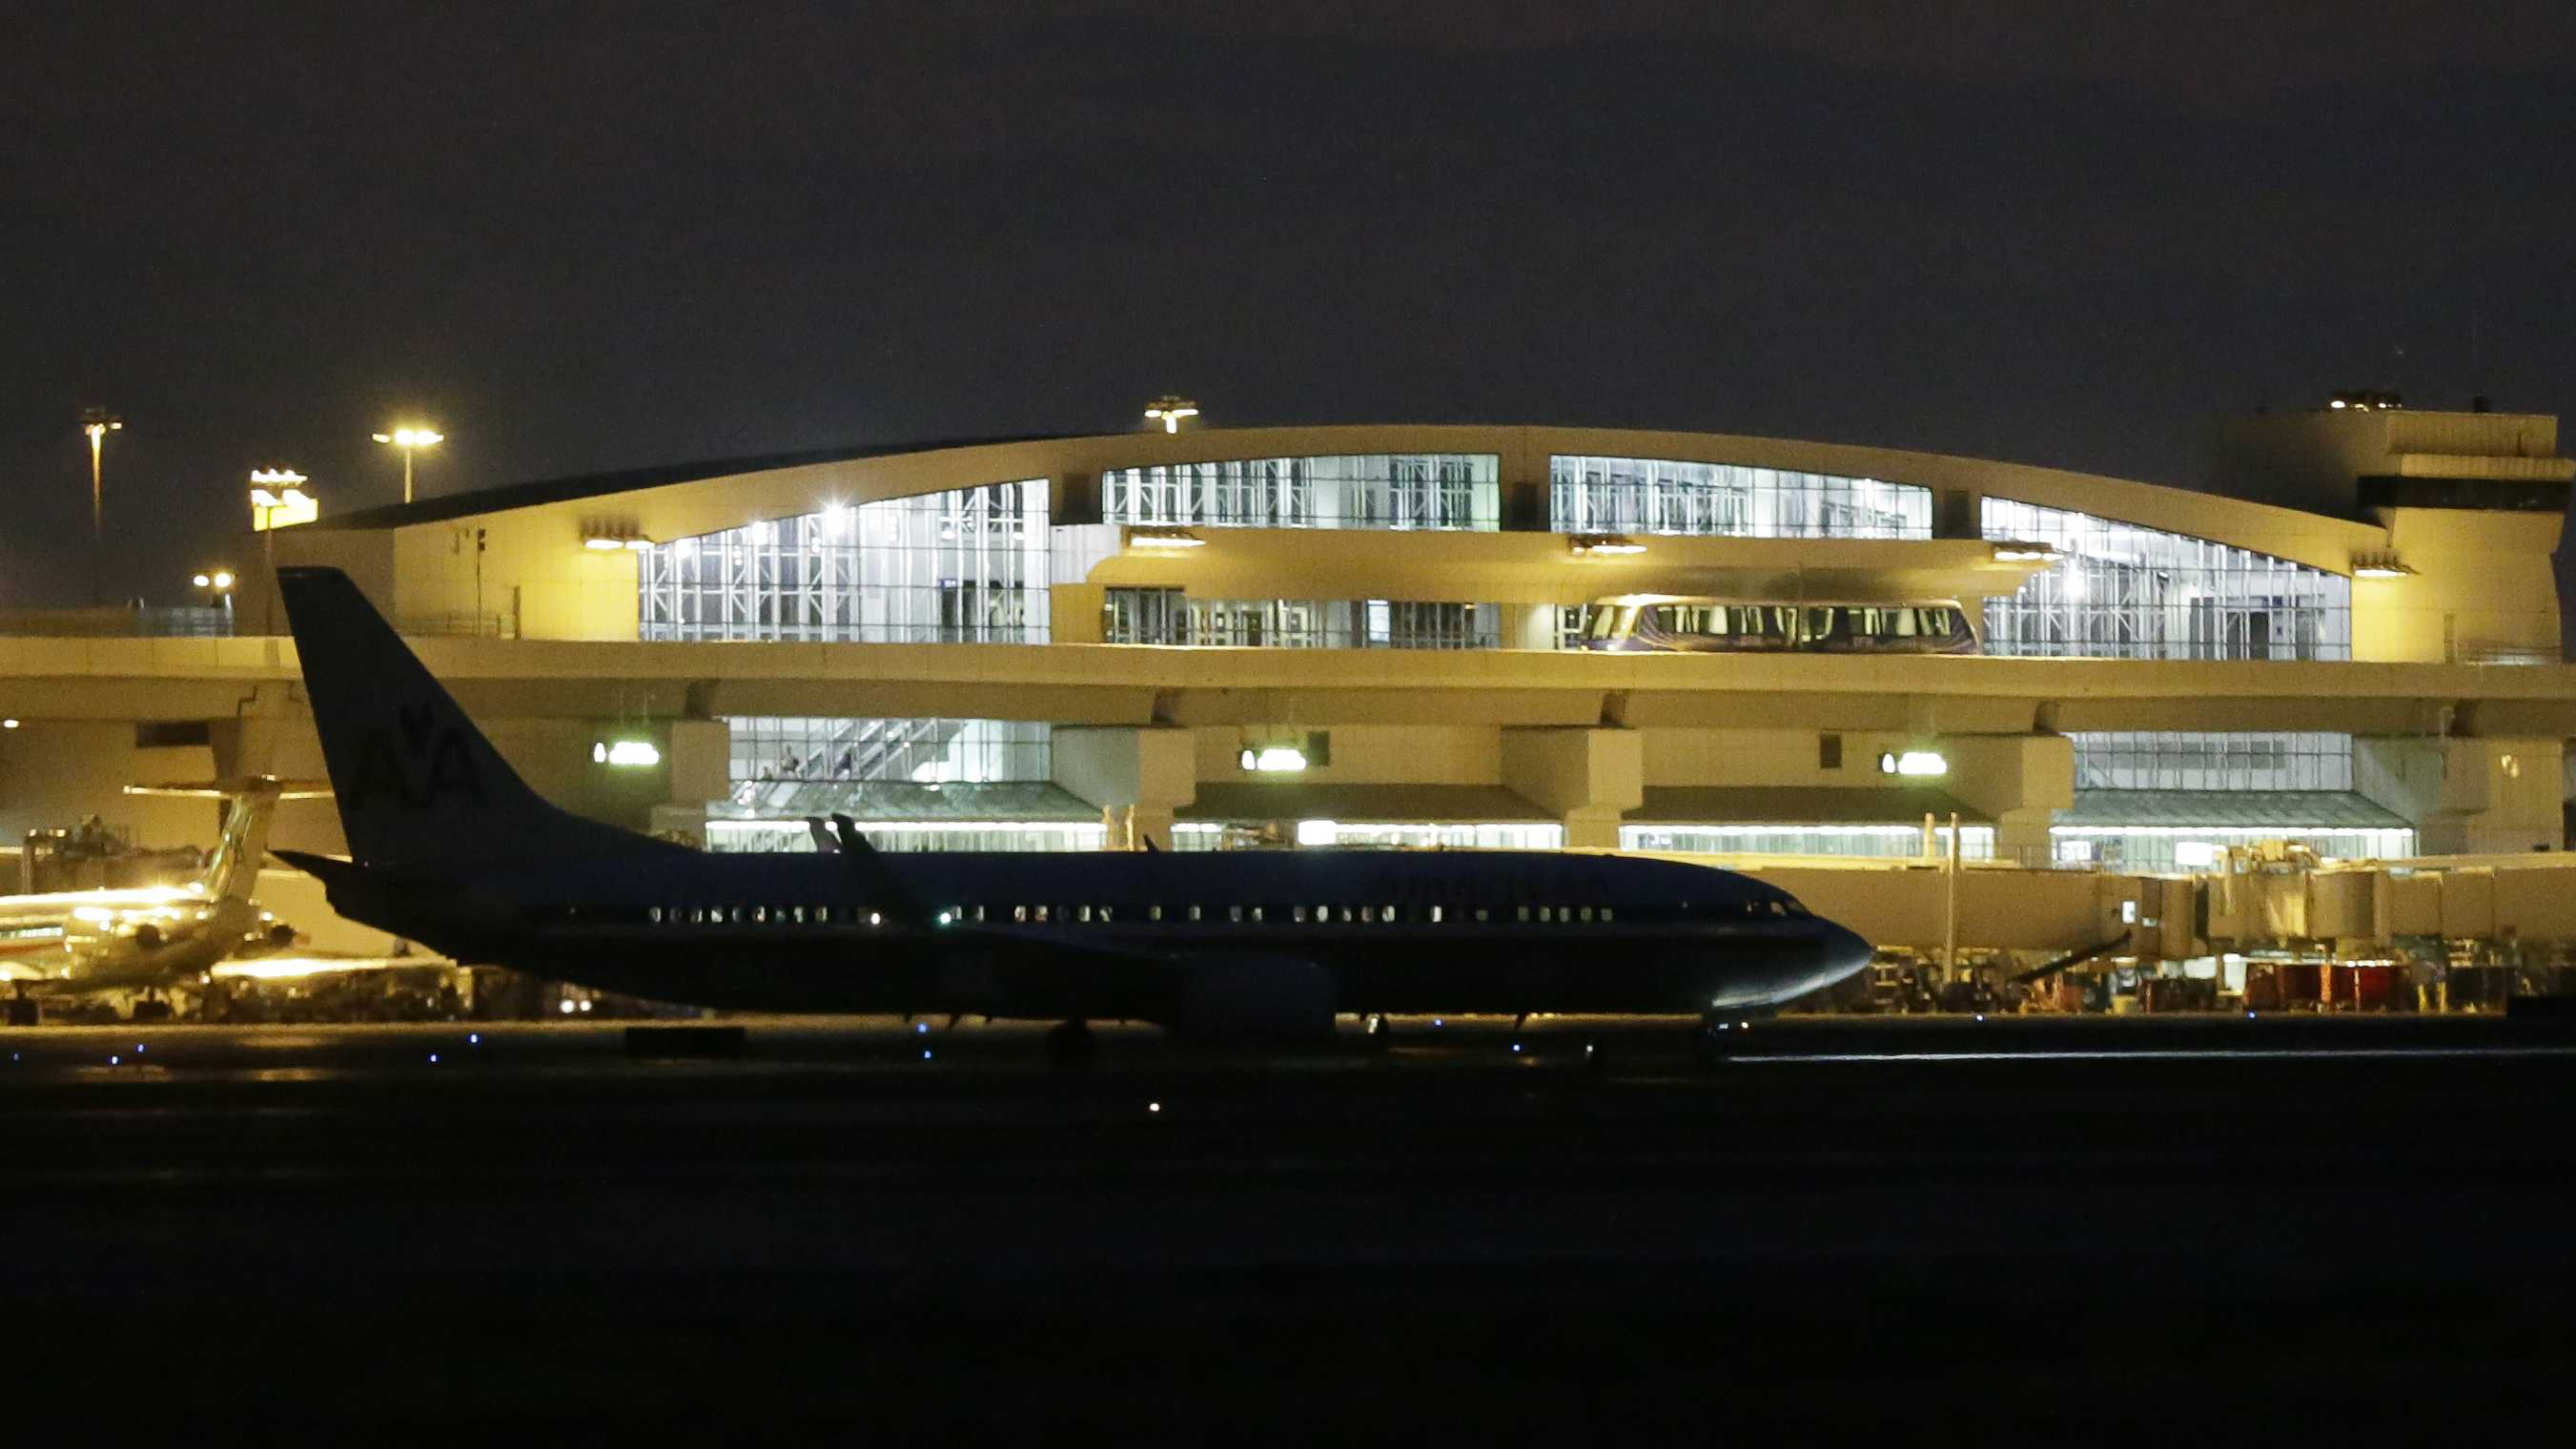 In this Aug. 25, 2015 photo, a passenger jet taxis past a terminal after arriving at Dallas/Fort Worth International Airport in Grapevine, Texas. Each day, more than 170,000 passengers use the airport, making it the ninth busiest in the world.